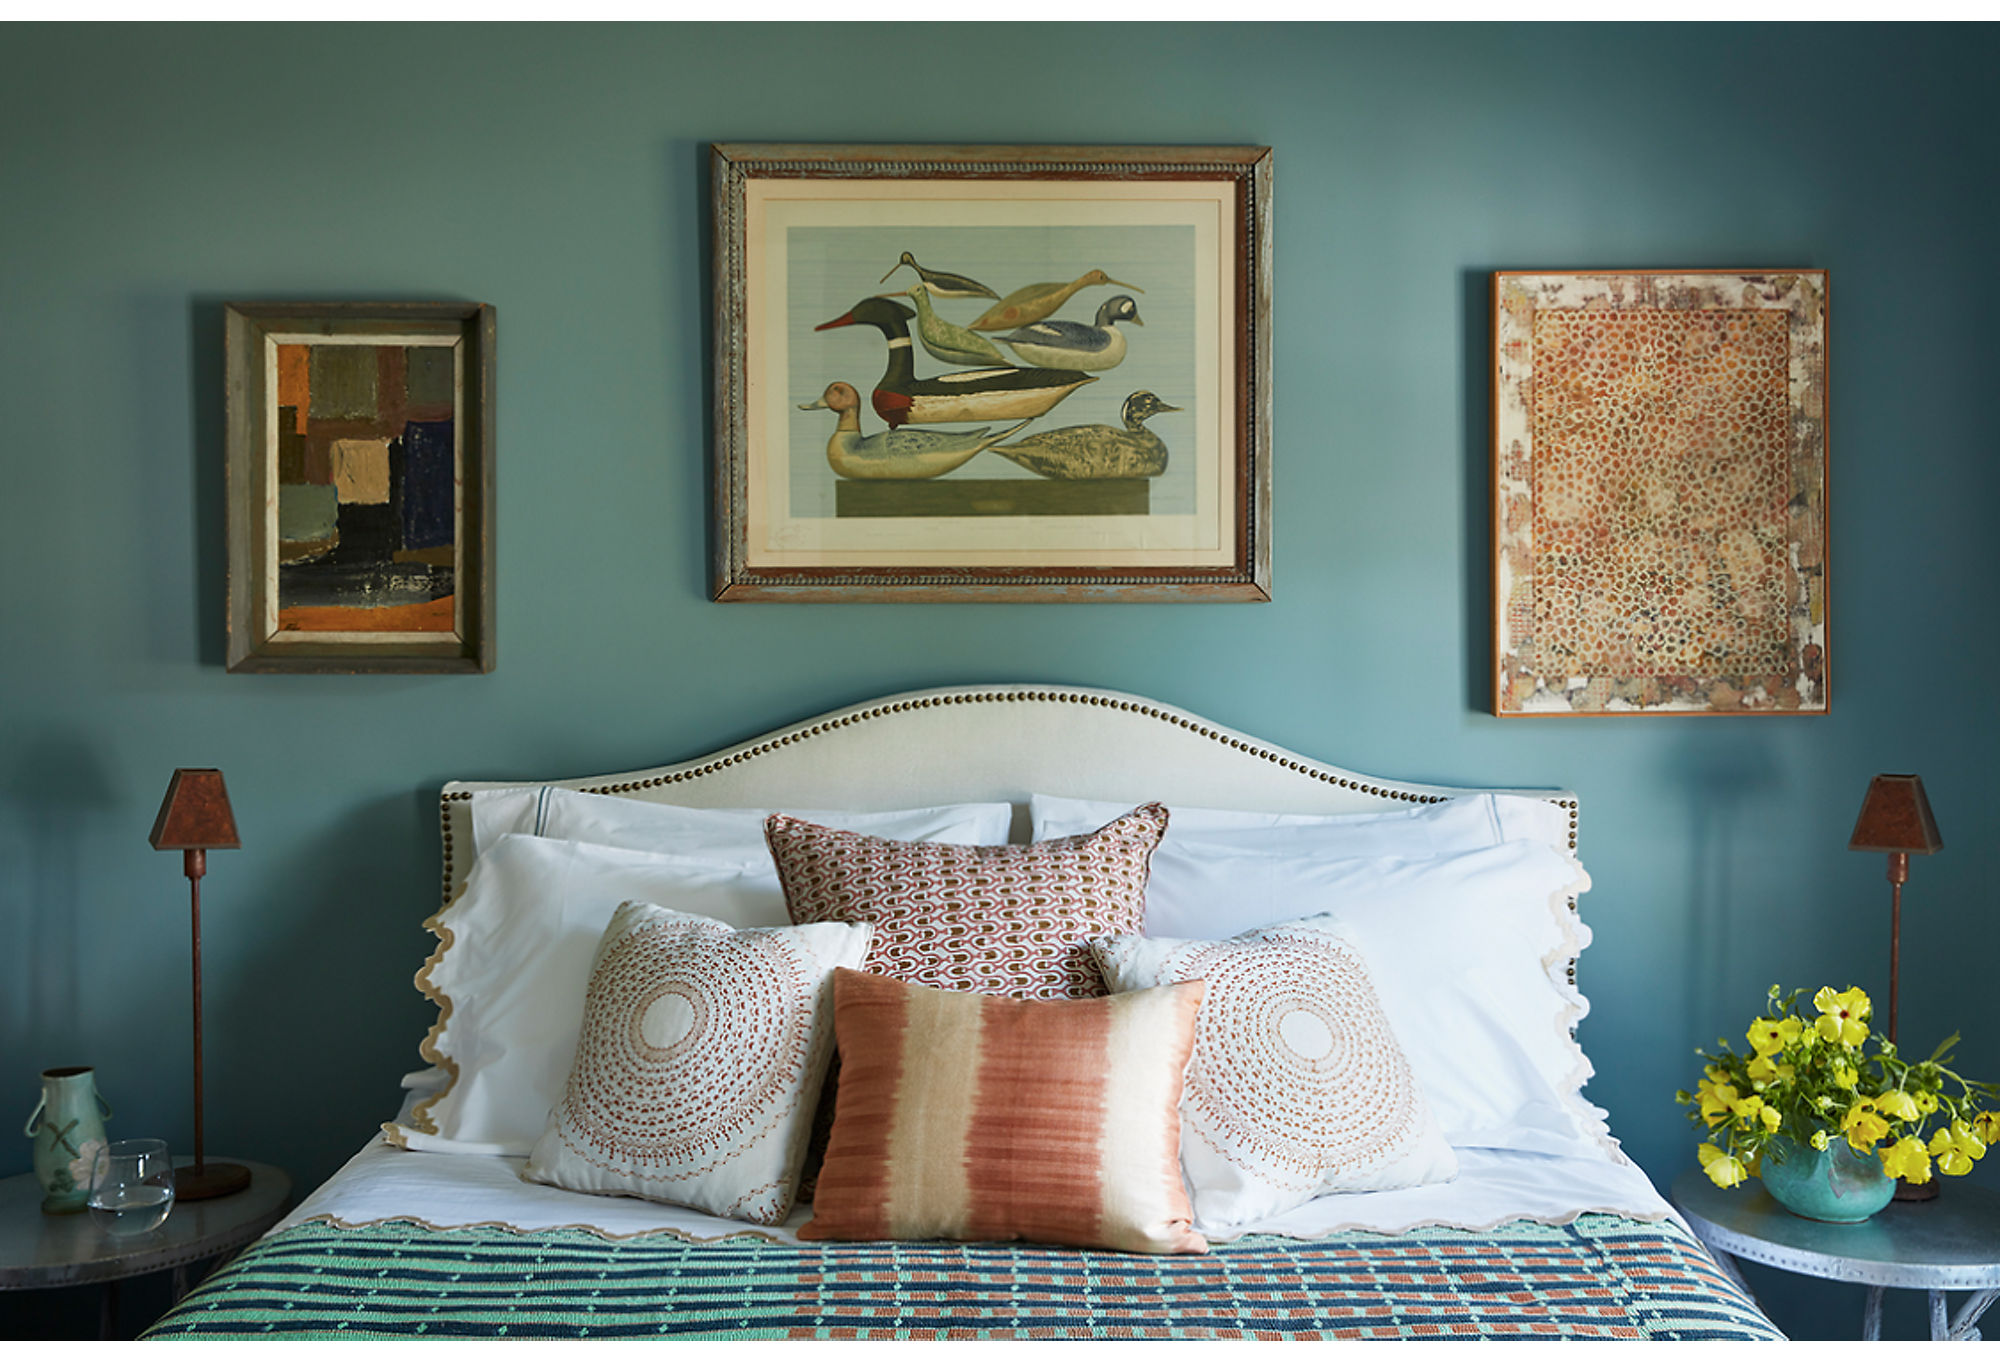 A snapshot fromShelia Bridges's guesthouse, as seen in the recent issue of Domino.